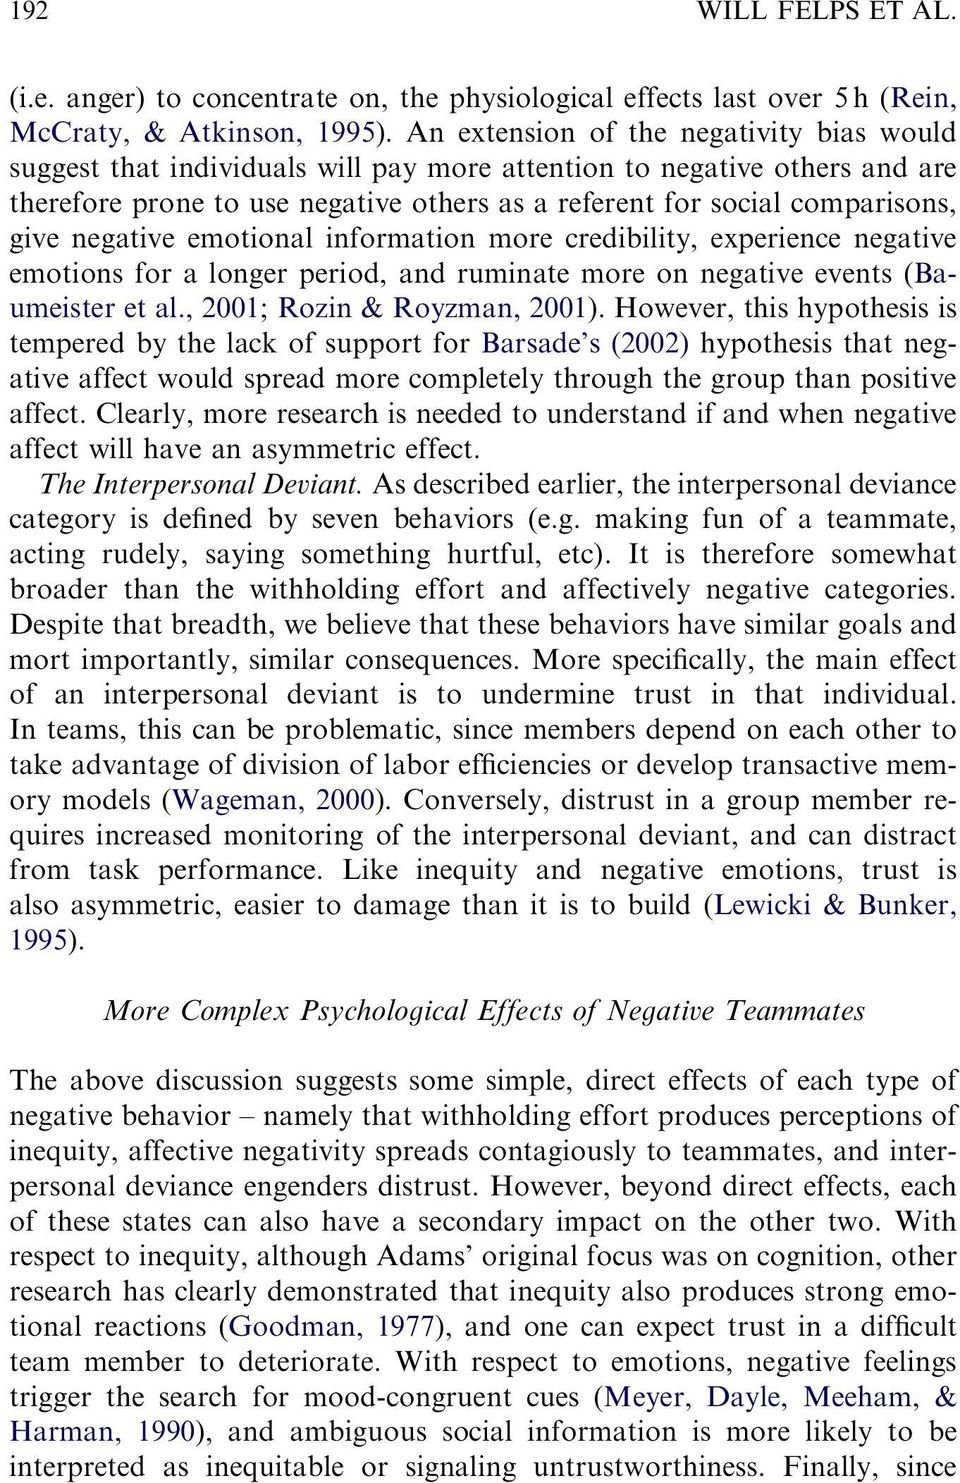 negative emotional information more credibility, experience negative emotions for a longer period, and ruminate more on negative events (Baumeister et al., 2001; Rozin & Royzman, 2001).